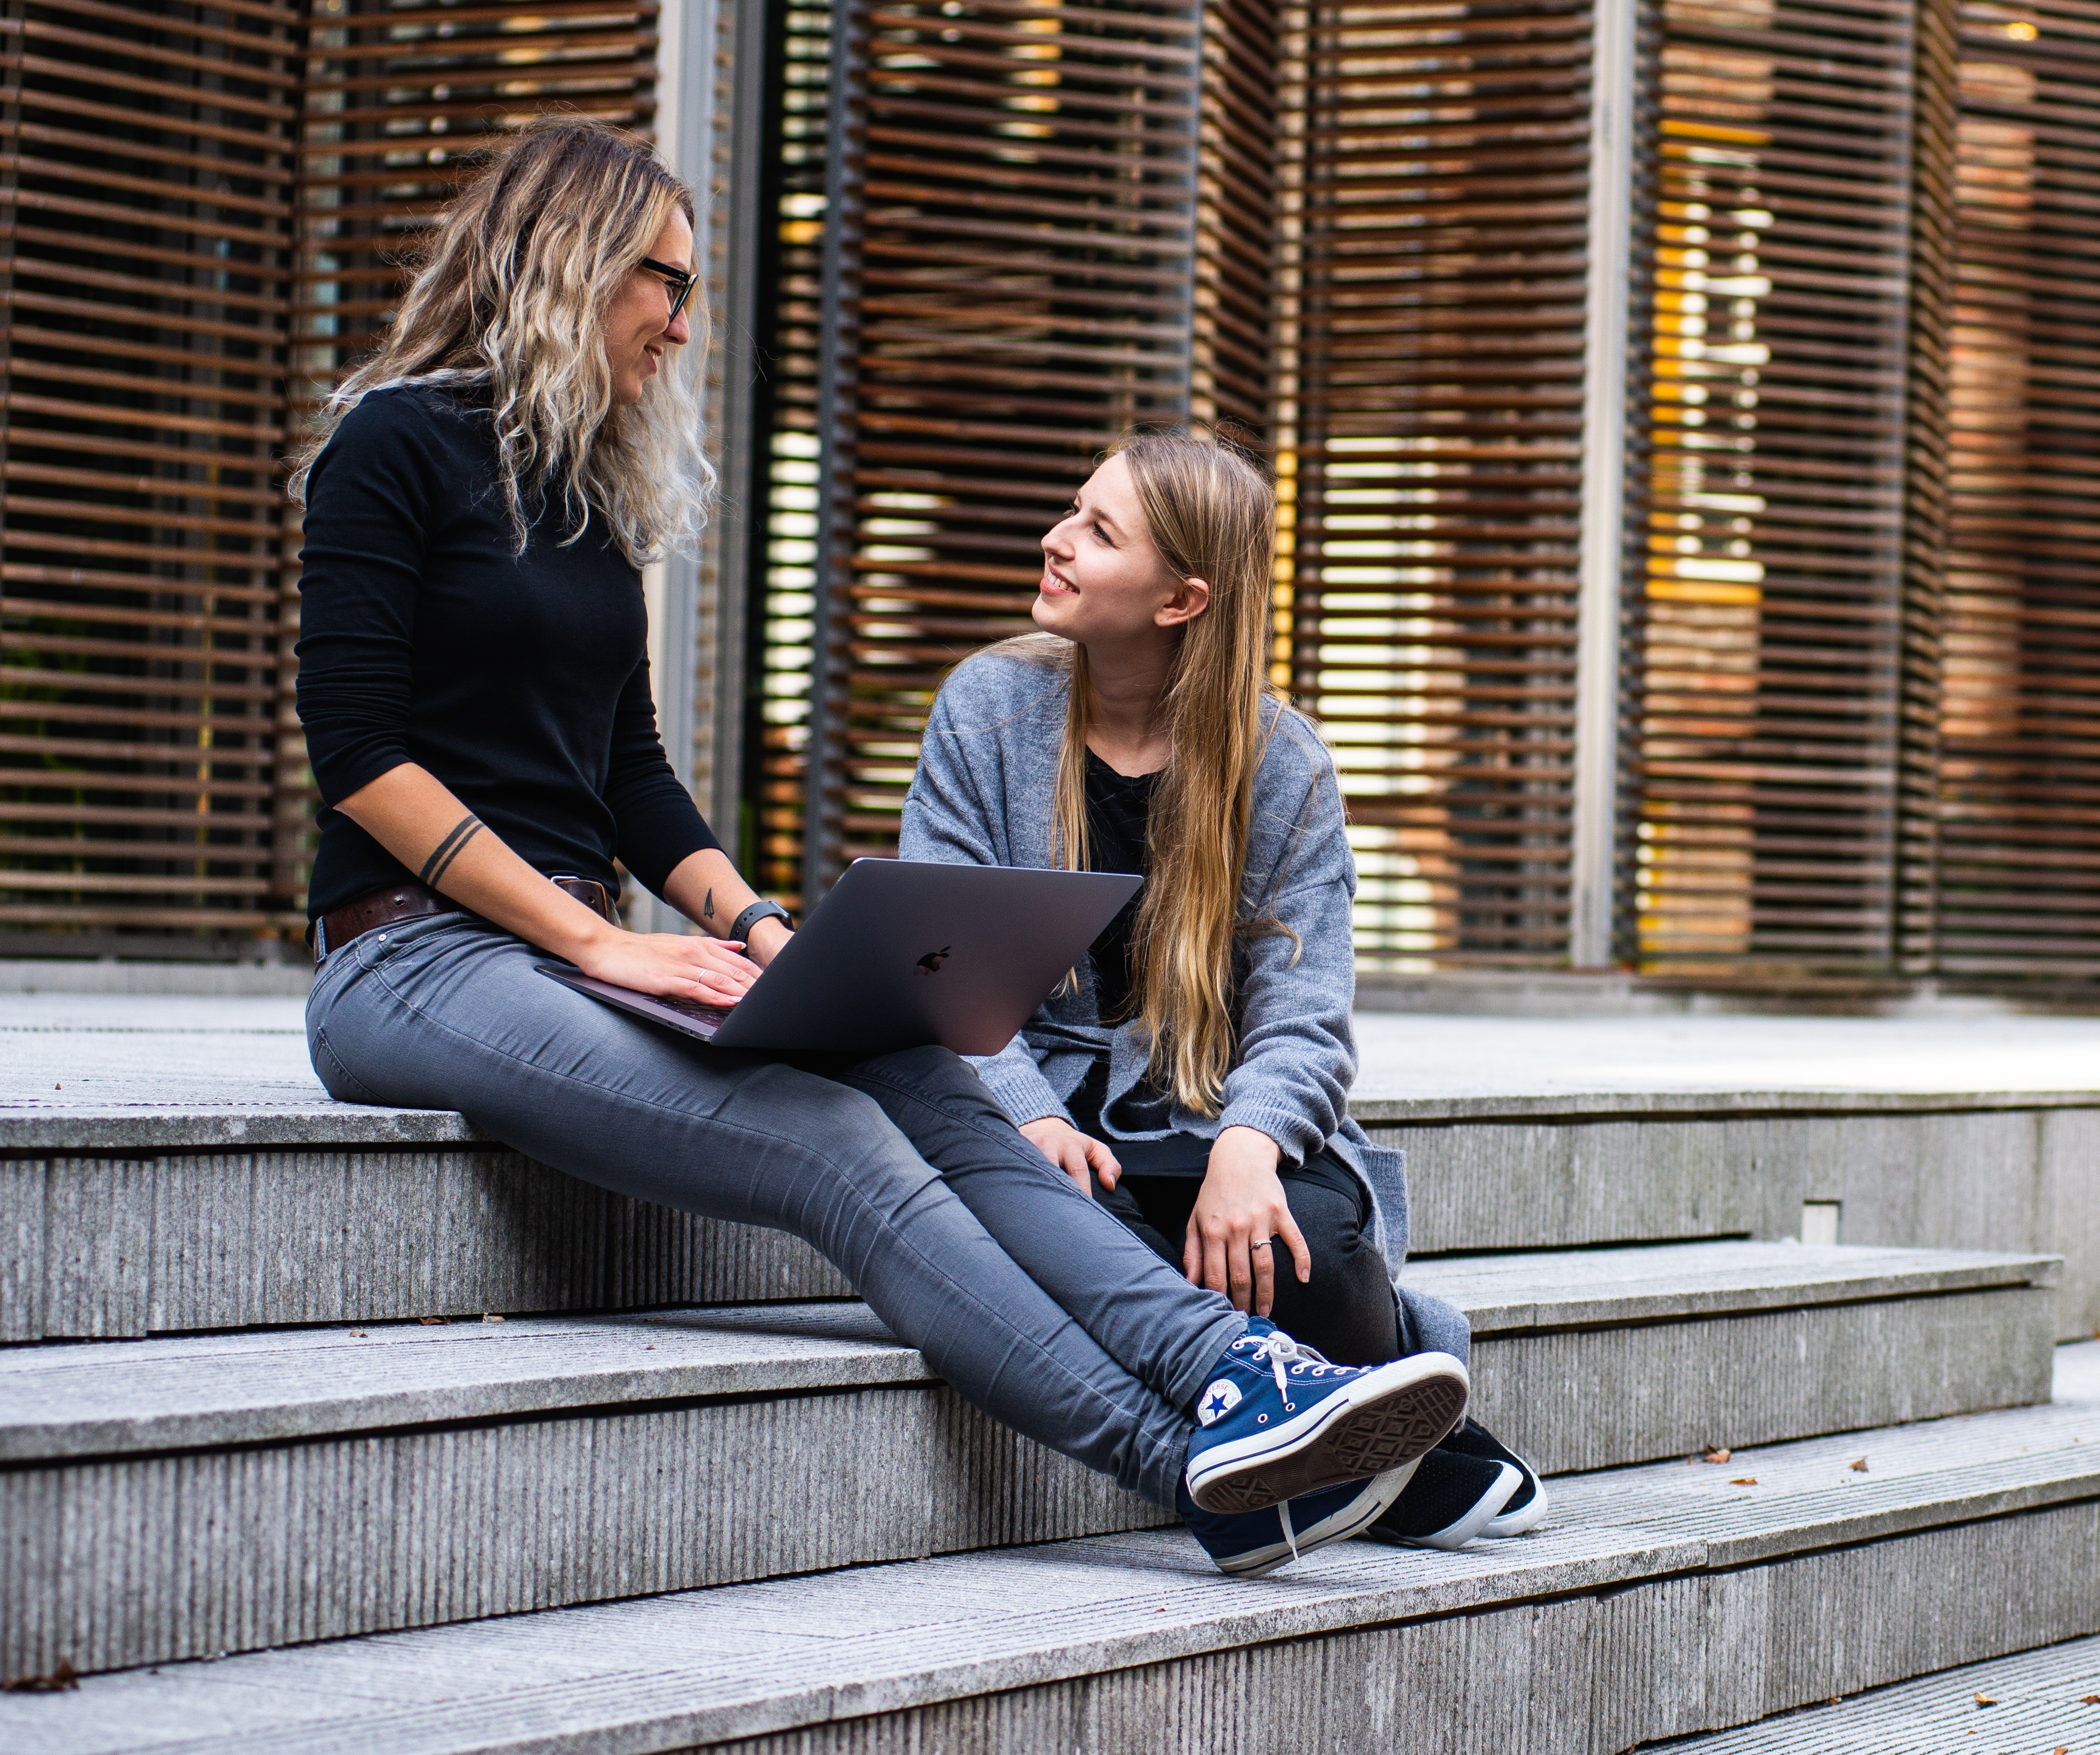 two-women-having-conversation-on-stairs-1438084_trimmed.jpg